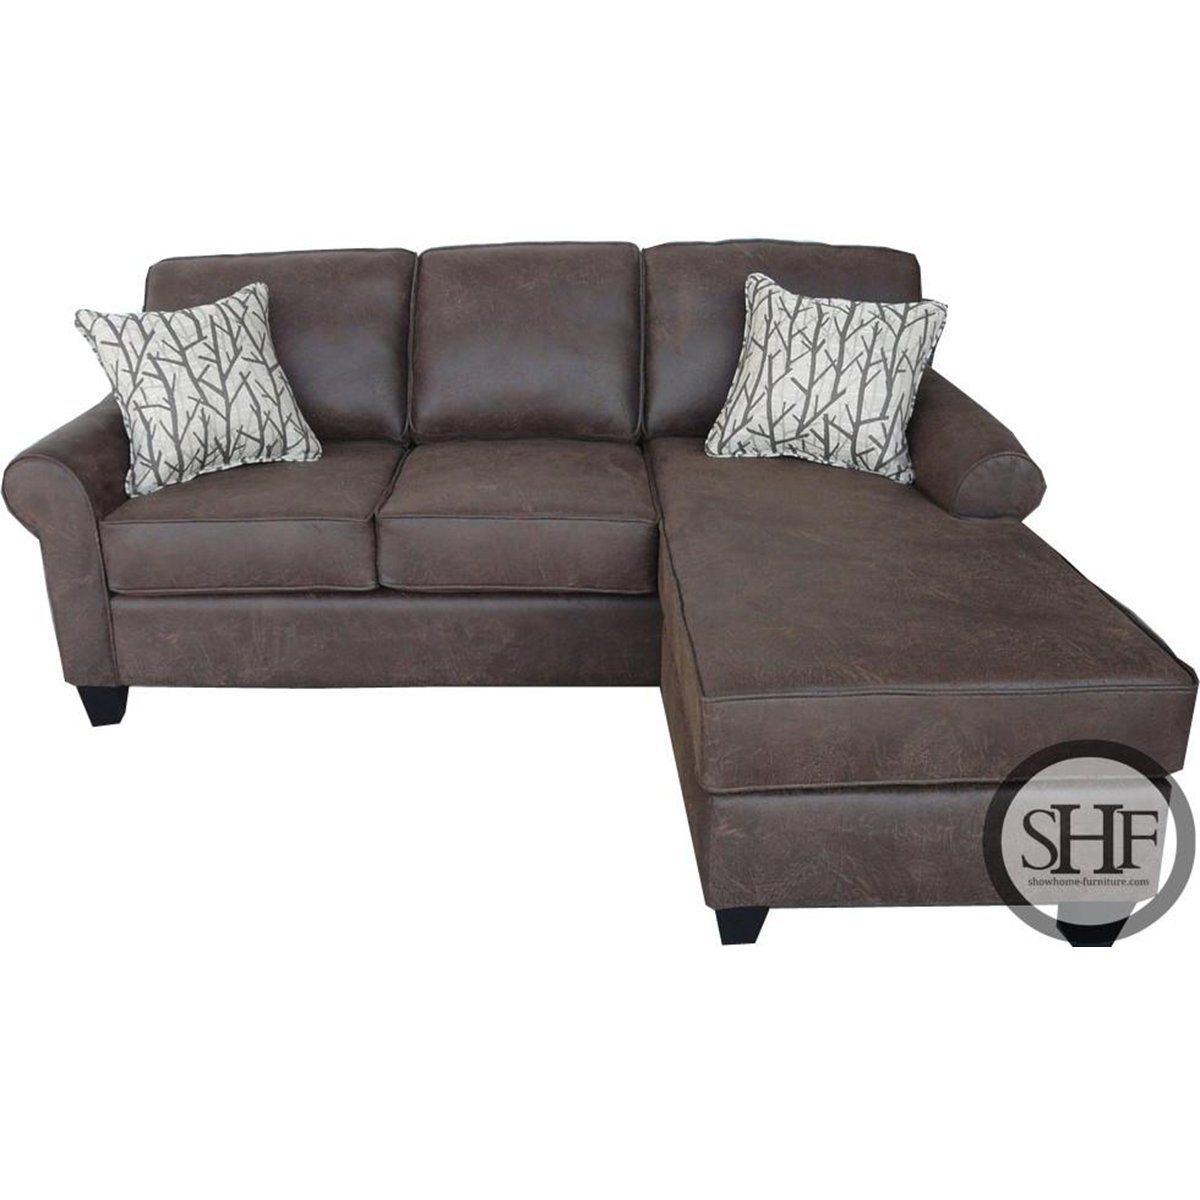 Flip Sofa W/Chaise and Queen Sofa Bed - Showhome Furniture